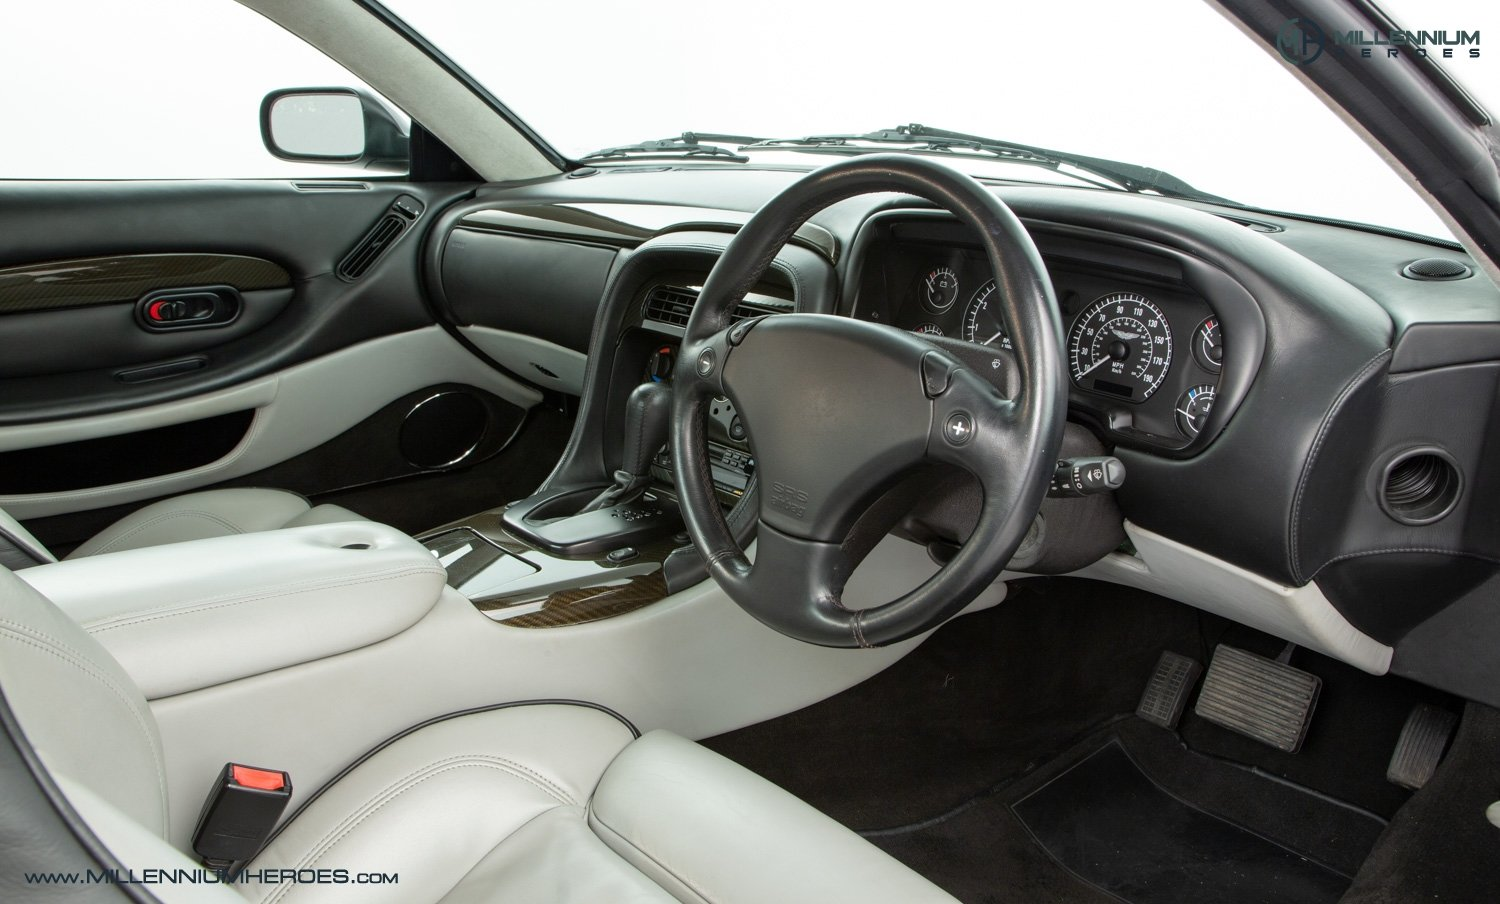 2000 ASTON MARTIN DB7 5.9 VANTAGE  For Sale (picture 15 of 24)